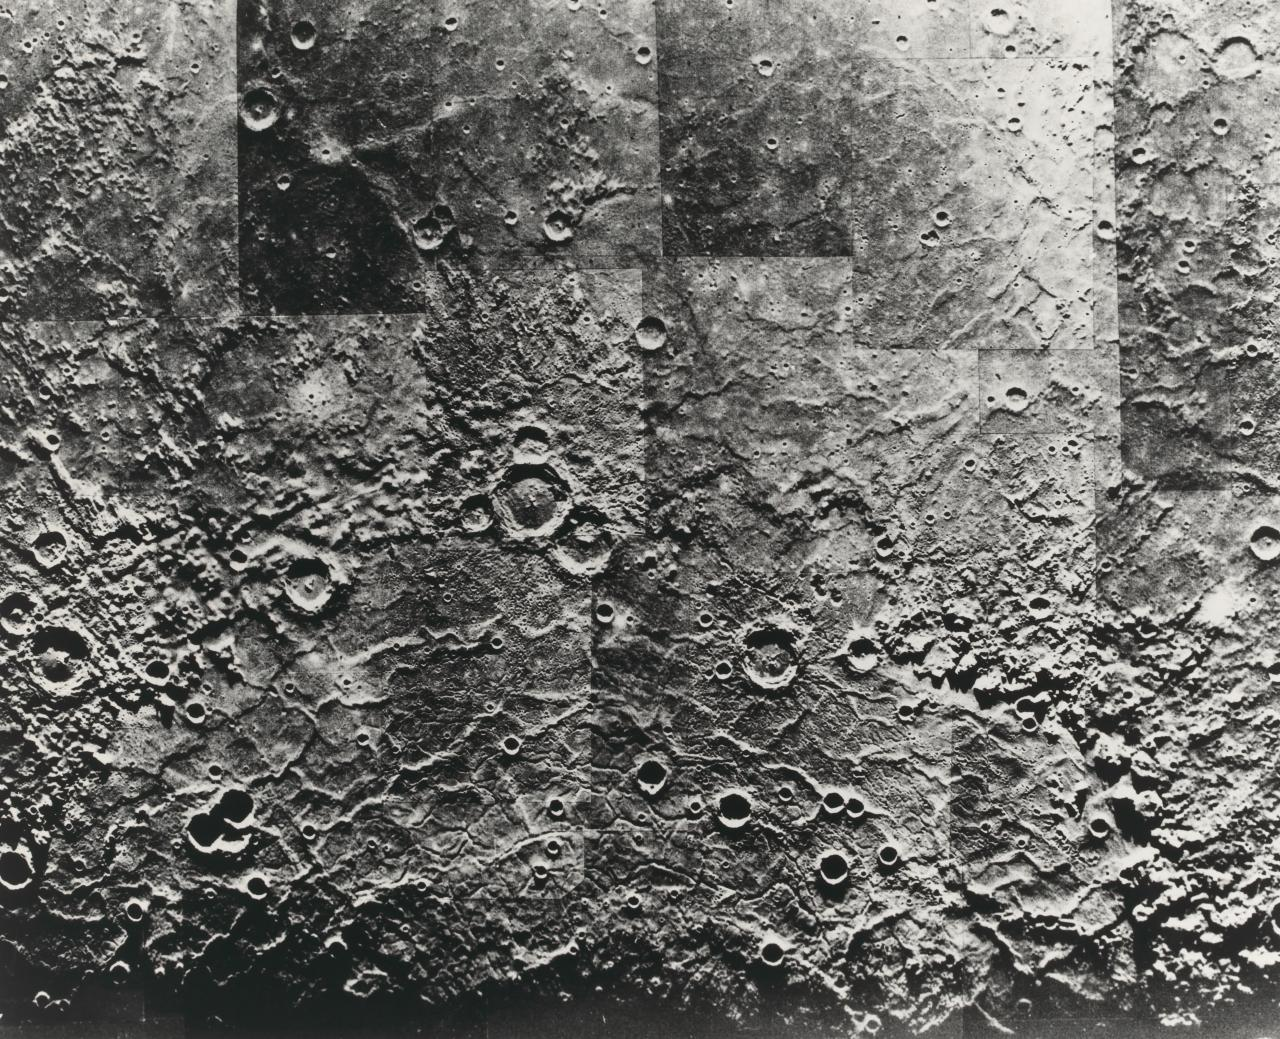 Photomosaic of Mercury, showing semicircle of cratered mountains